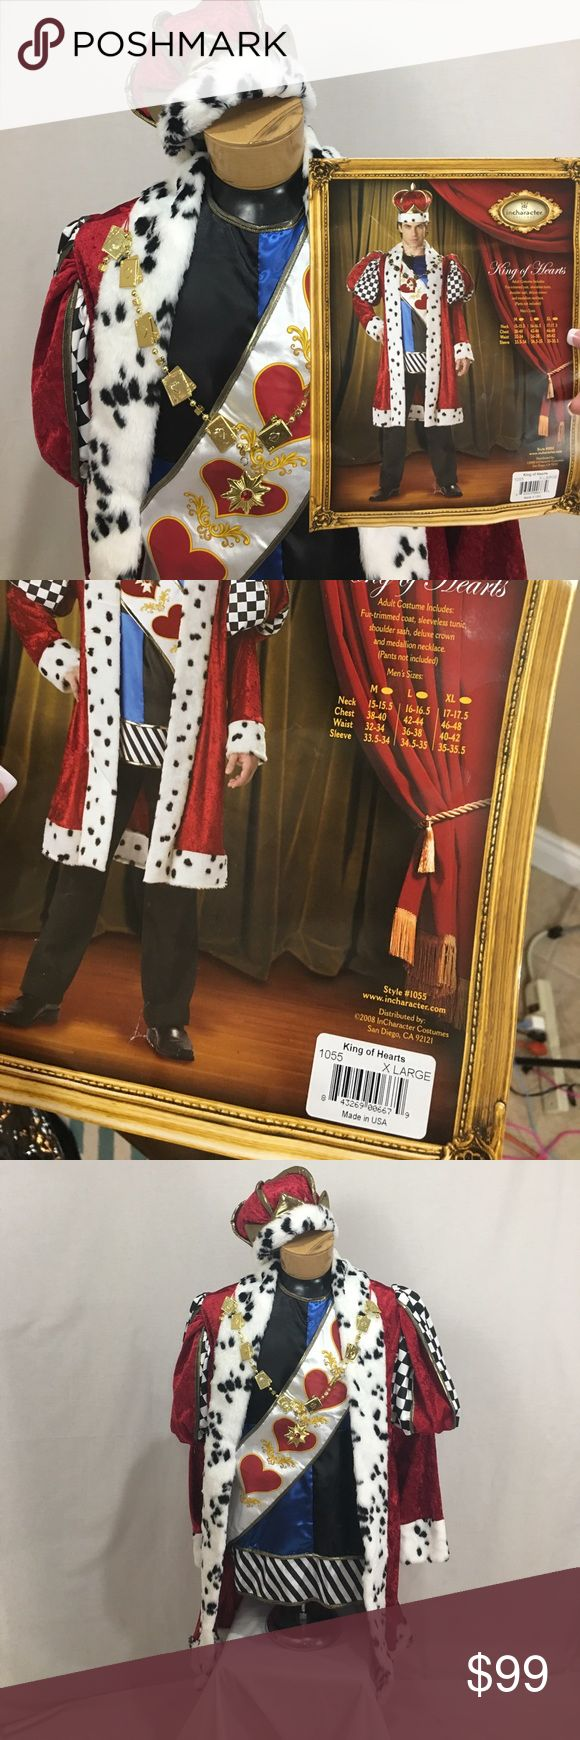 •MENS• King of Hearts costume -Alice in wonderland King of hearts costume-just add pants. Comes with Faux Fur trimmed coat, sleeveless tunic, sash, crown, medallion. Worn once for an indoor Halloween party. The attachments for the necklace are slightly damaged and made a small hole in the fabric on one side. Size XLARGE. According to chart fits- neck 17-17.5 chest -46-48 waist 40-42 sleeve 35-35.5. Ask for measurements if necessary 🌹no trades 🌹discounts on bundles of 2+  🌹1000 items…